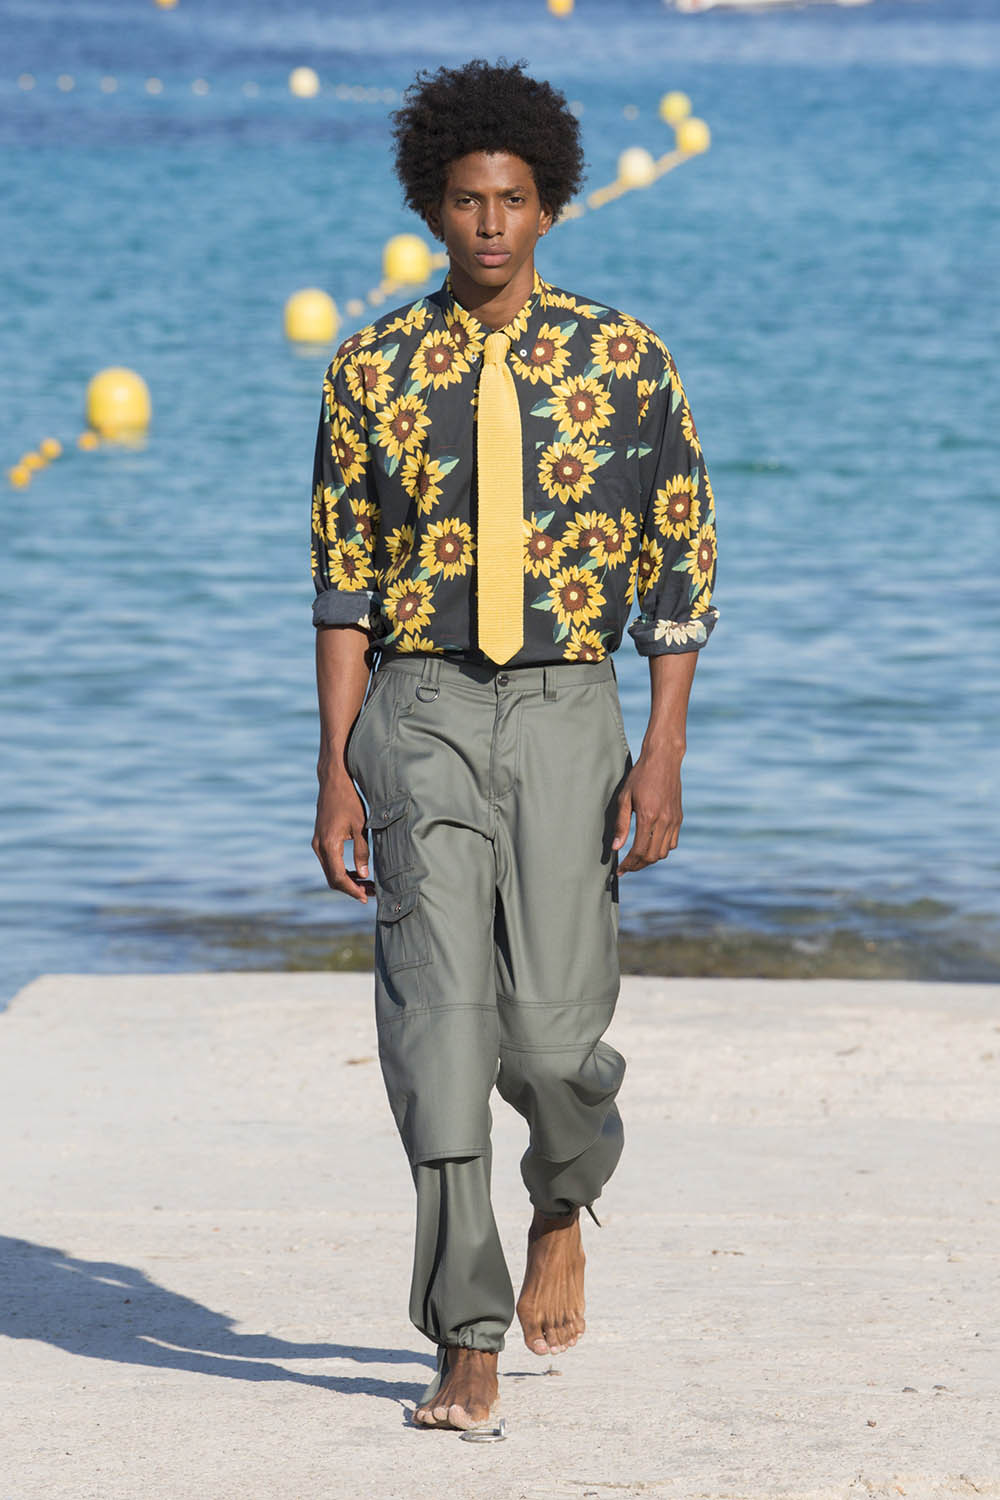 Jacquemus Paris Fashion Week Men's SS19 - Sagaboi - Look 9